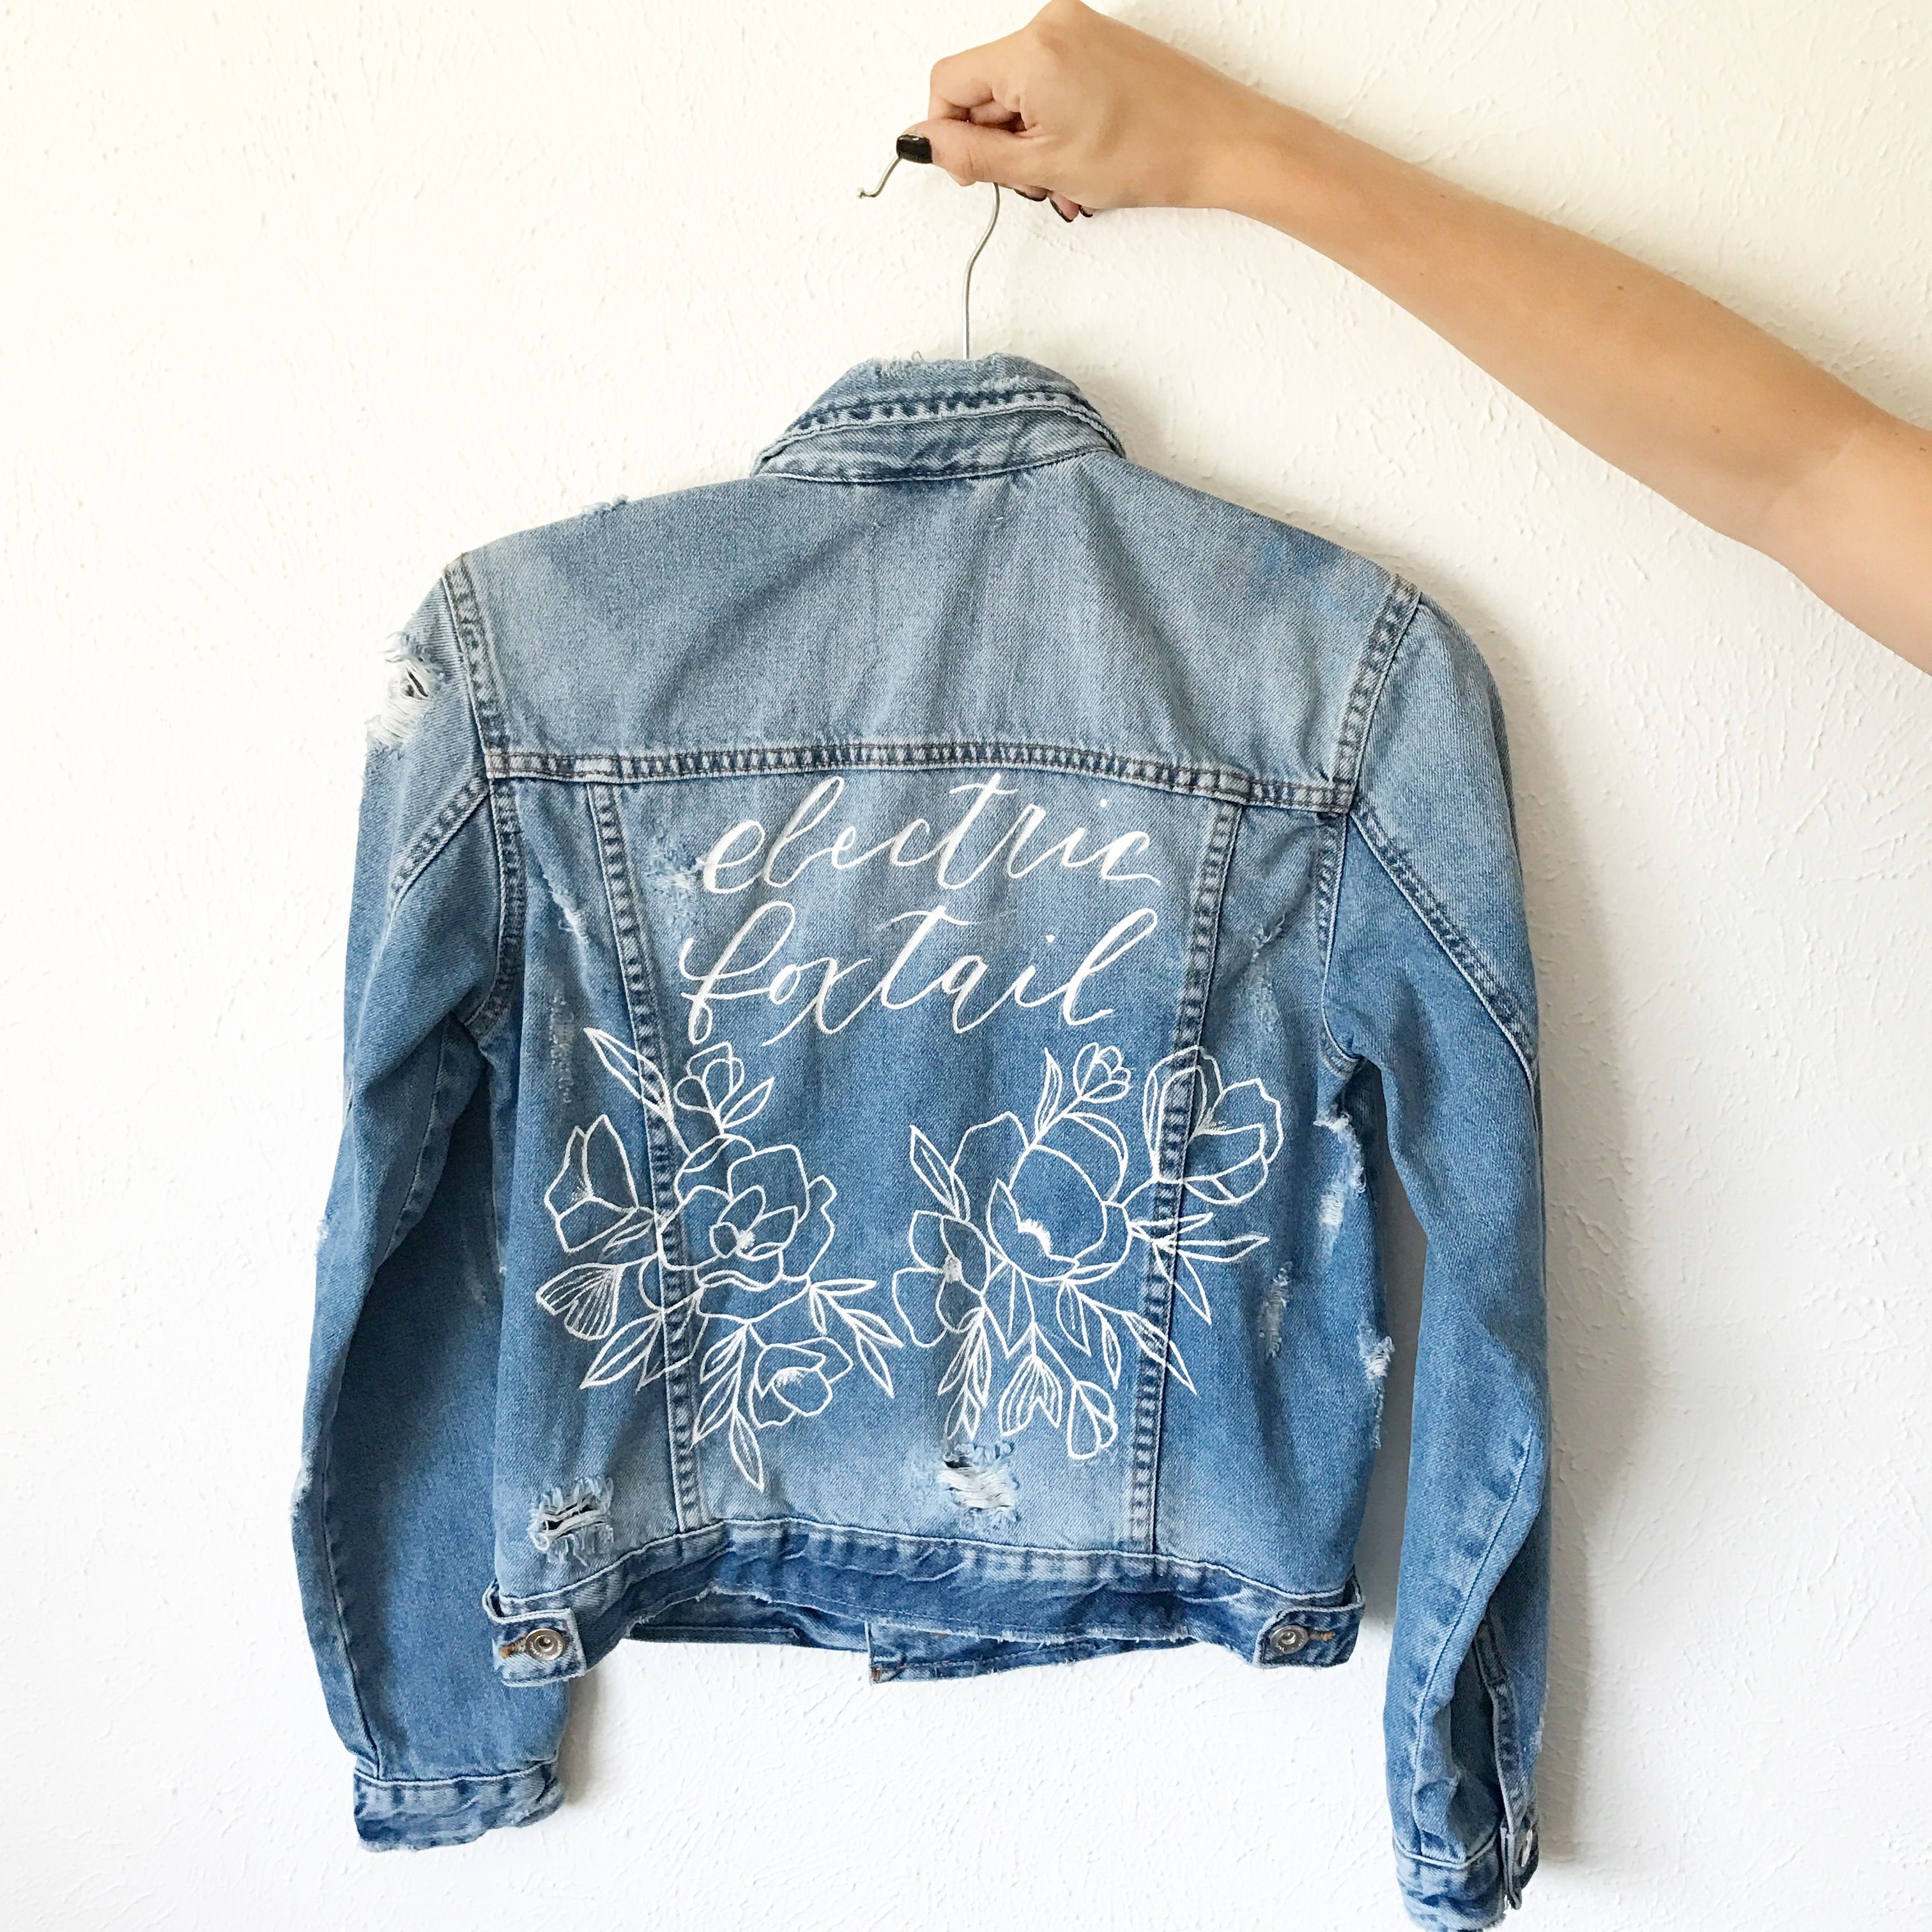 Hand Painted Jacket By Alli K Design Painted Jacket Diy Clothes Jackets Diy Summer Clothes [ 3024 x 3024 Pixel ]